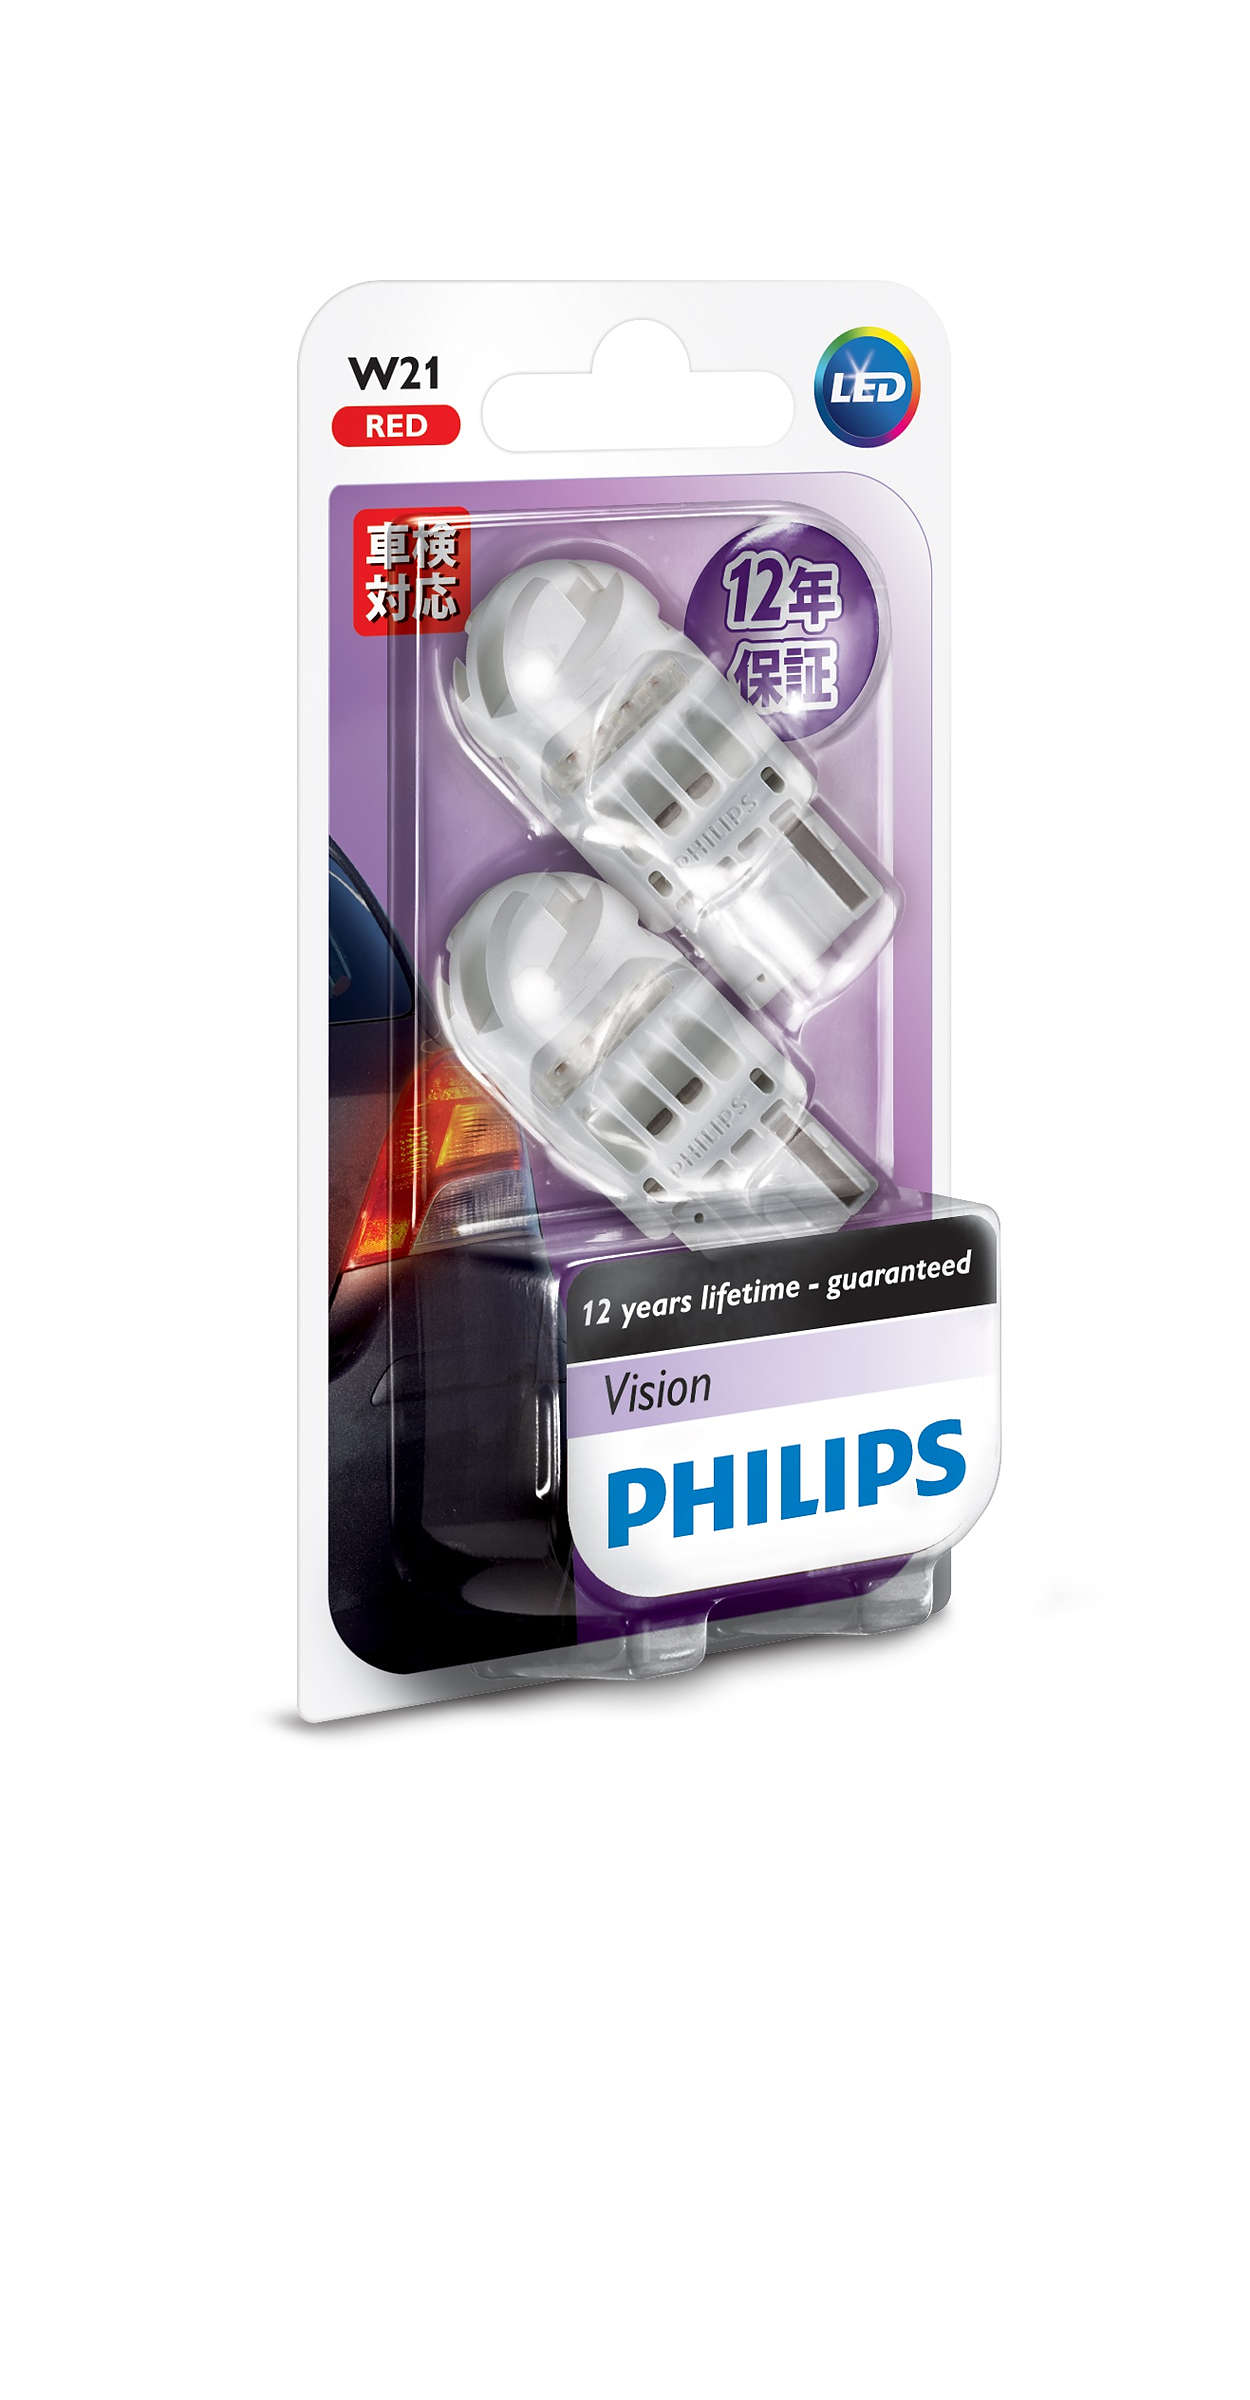 Lights that will outlast your car